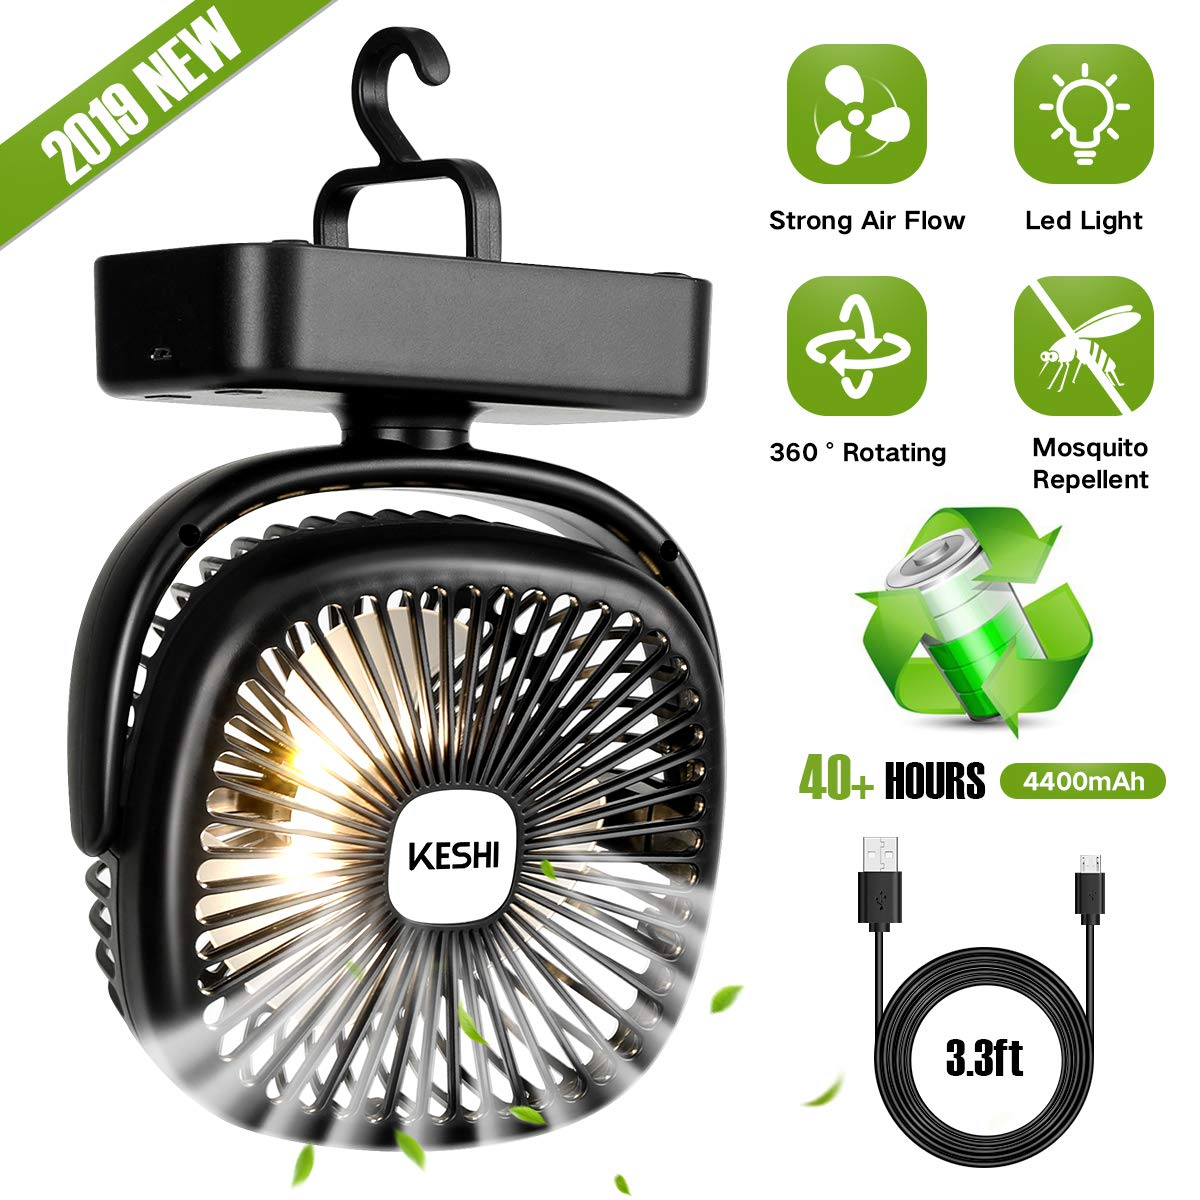 Portable Camping Fan with LED Lantern - 4400mAh Battery Powered Small Desk Fan - Super Quiet Personal Tent Fan - USB Rechargeable Fan for Camping, Hiking, Home and Office by KeShi